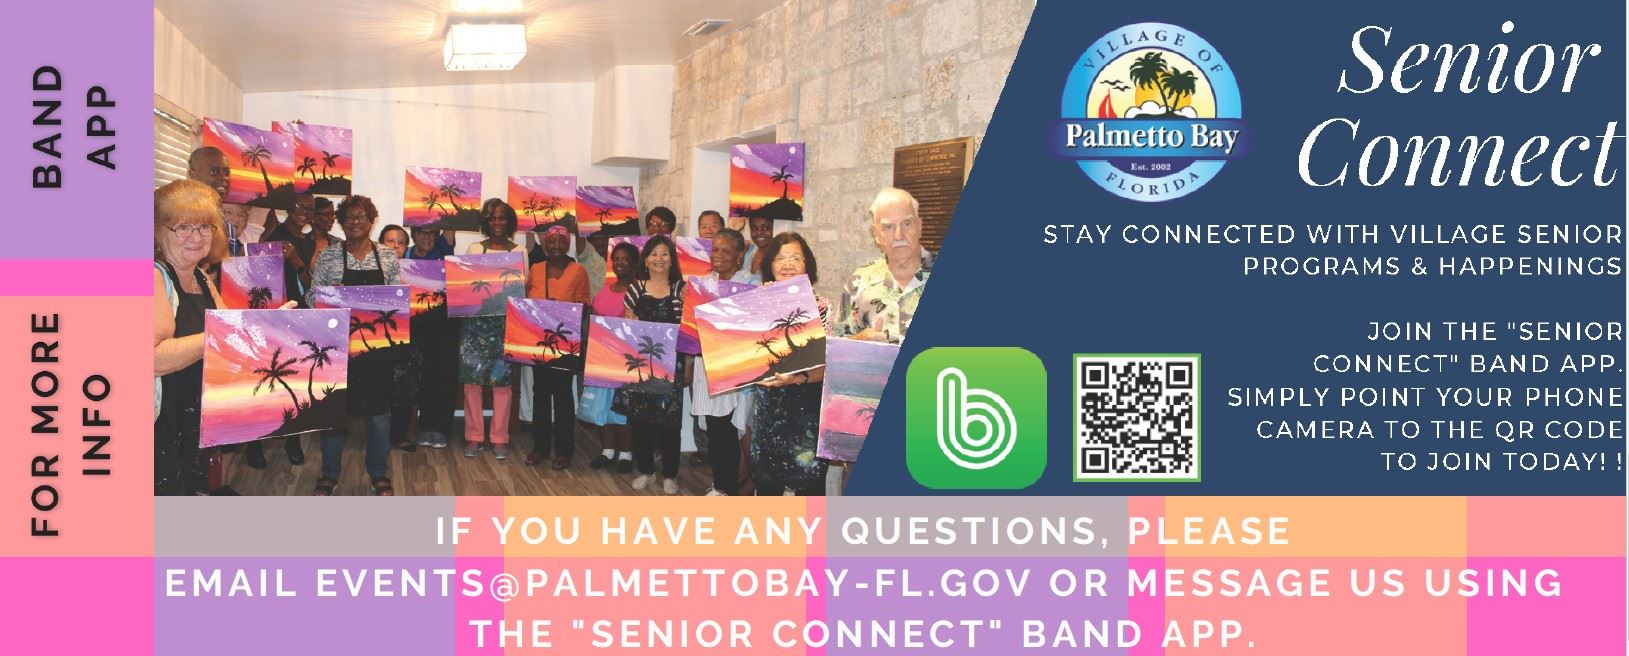 senior connect